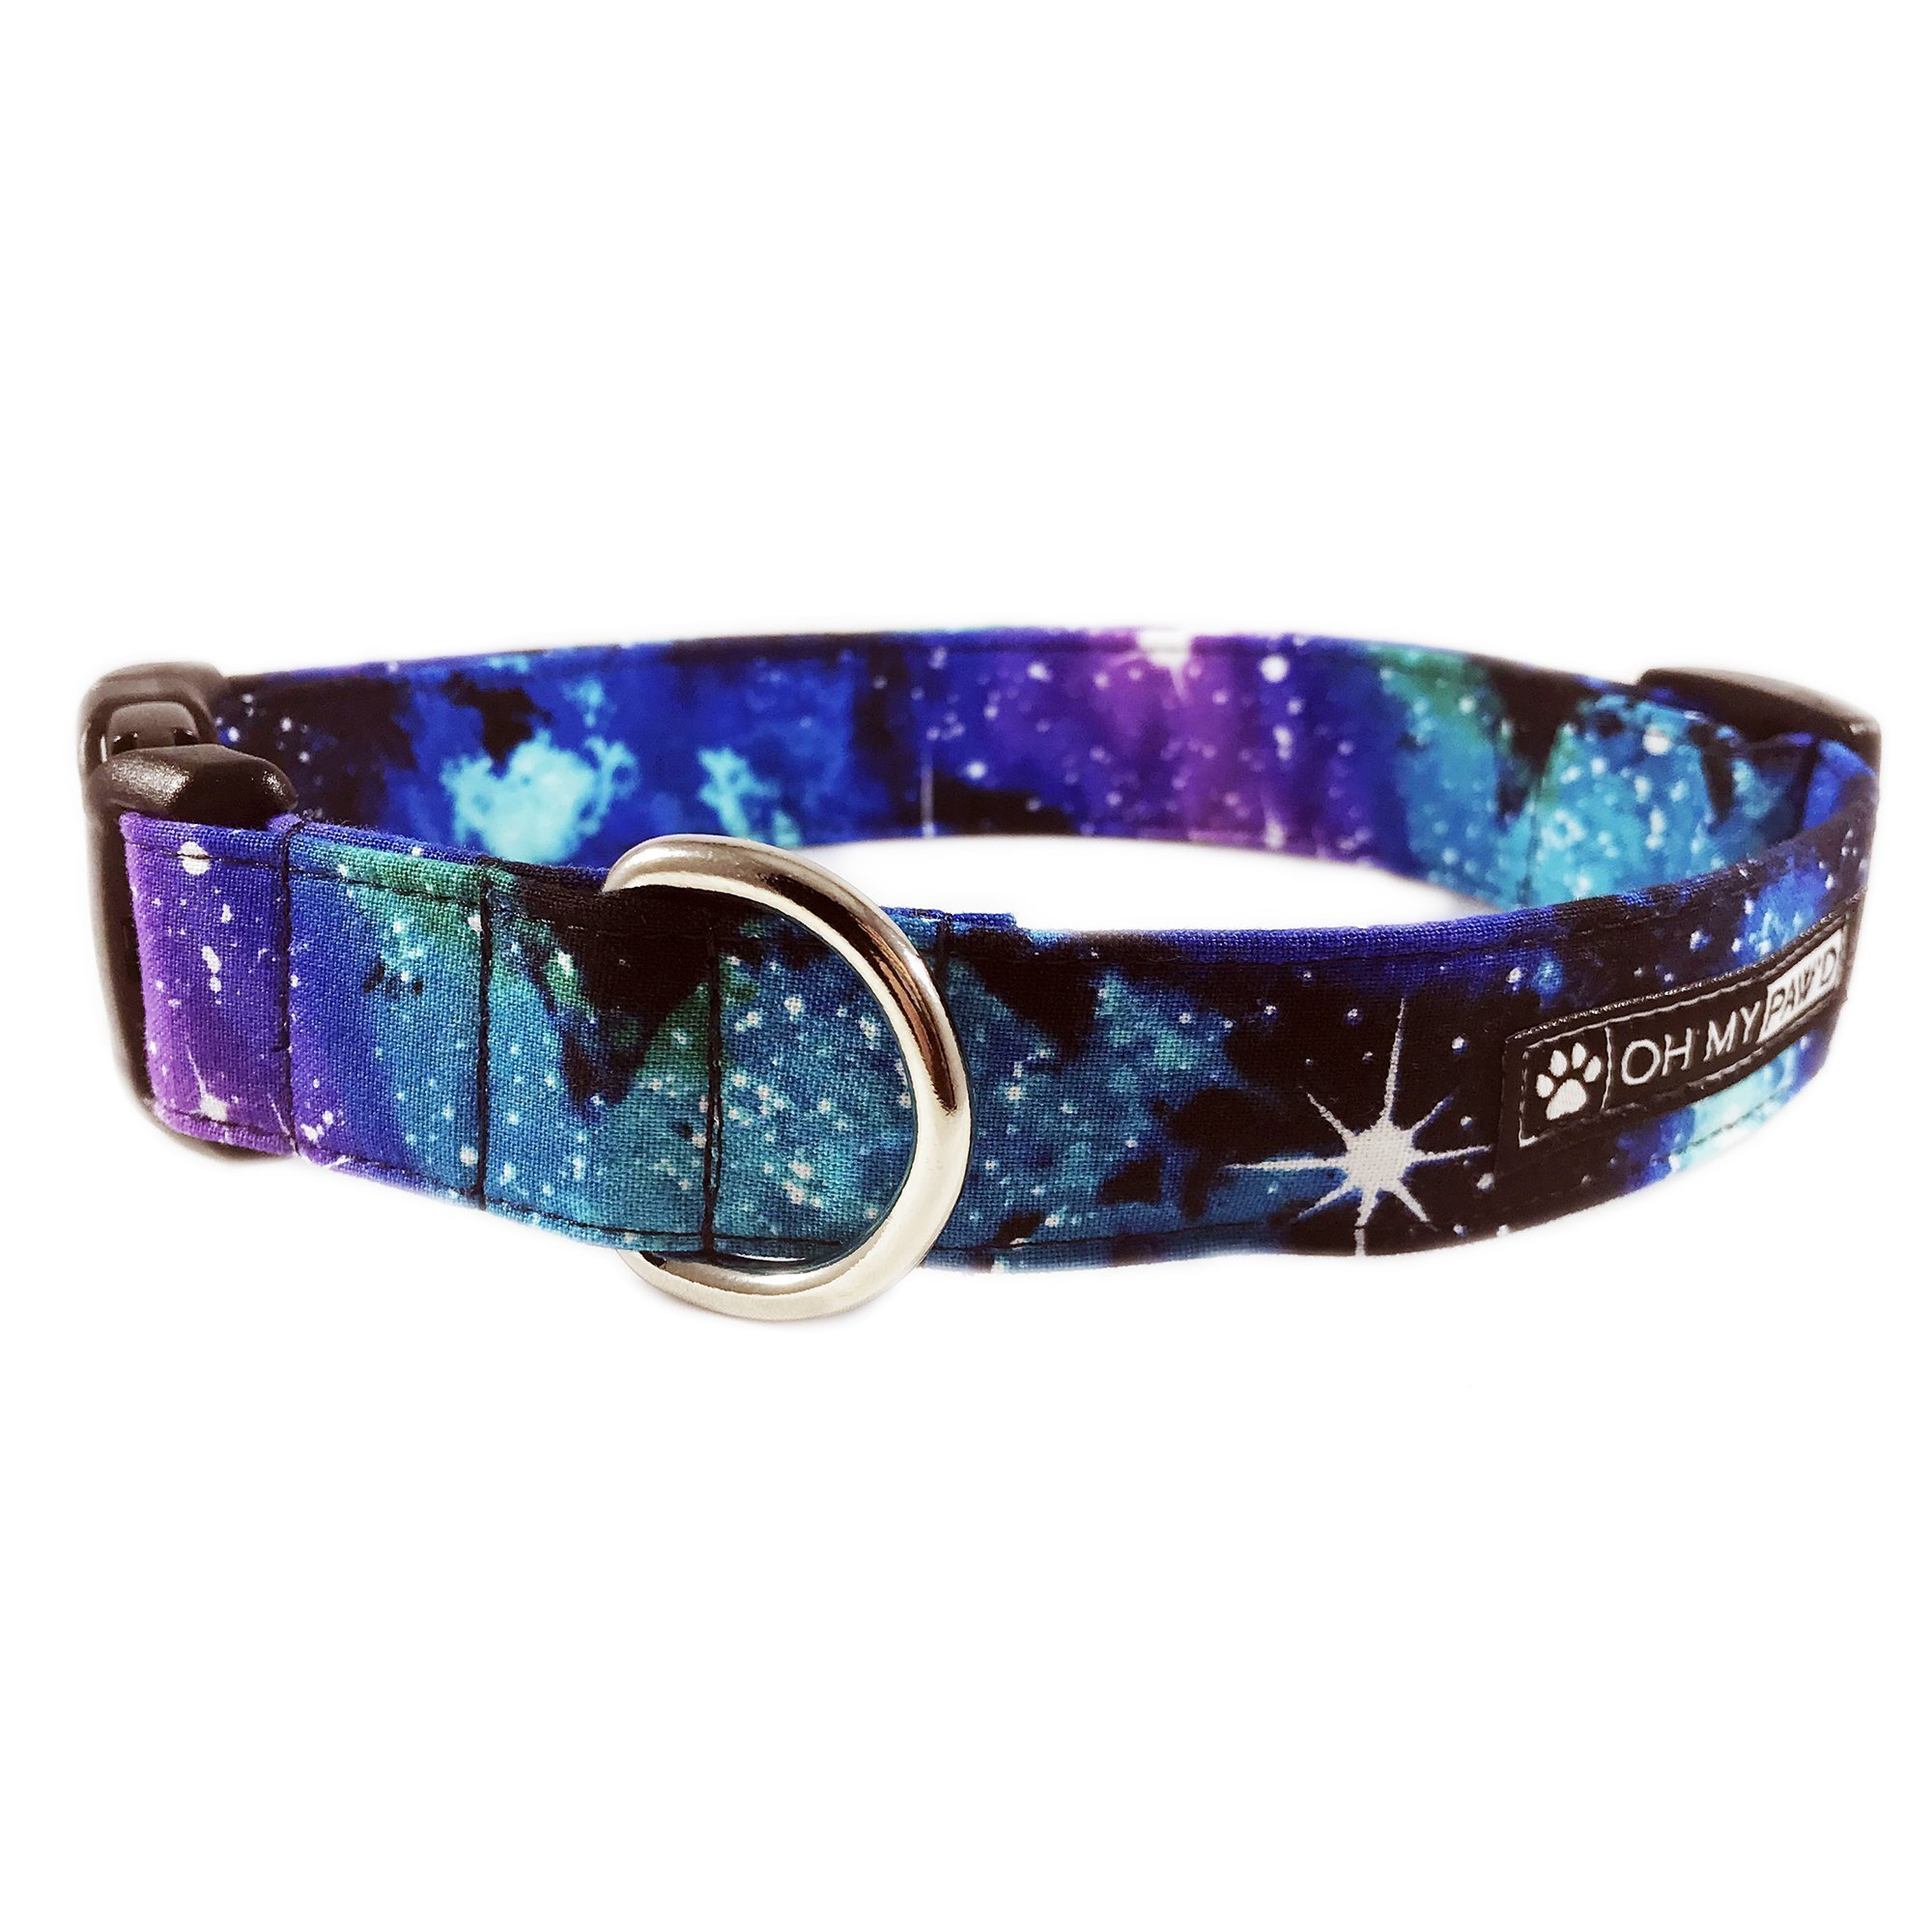 Hand Made Dog Collar - Galaxy Print Collar for Pets Size Large 1'' and Wide 15-23'' Long by Oh My Paw'd